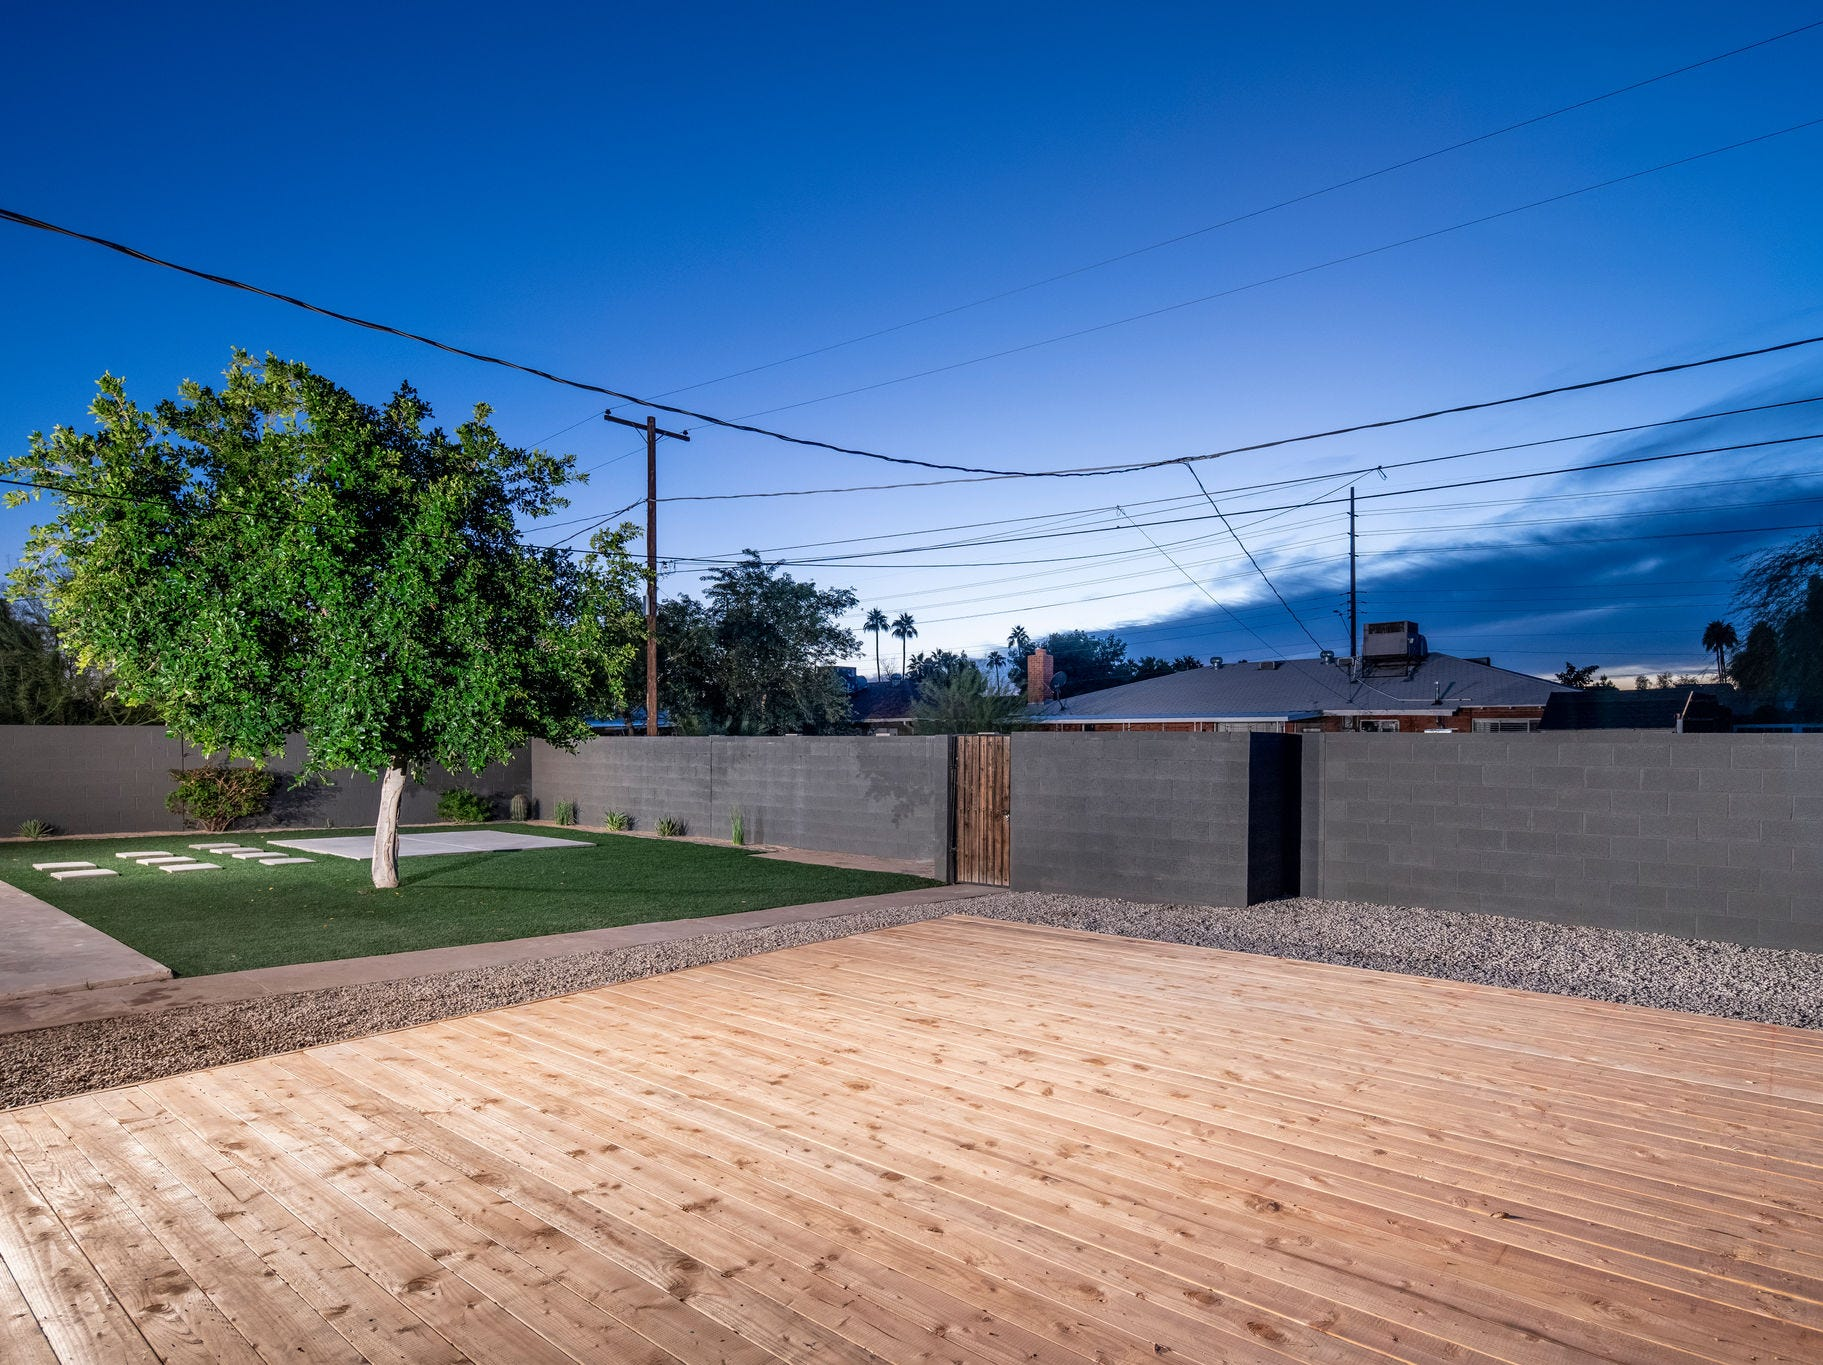 The sundeck adds extra living space to the property.